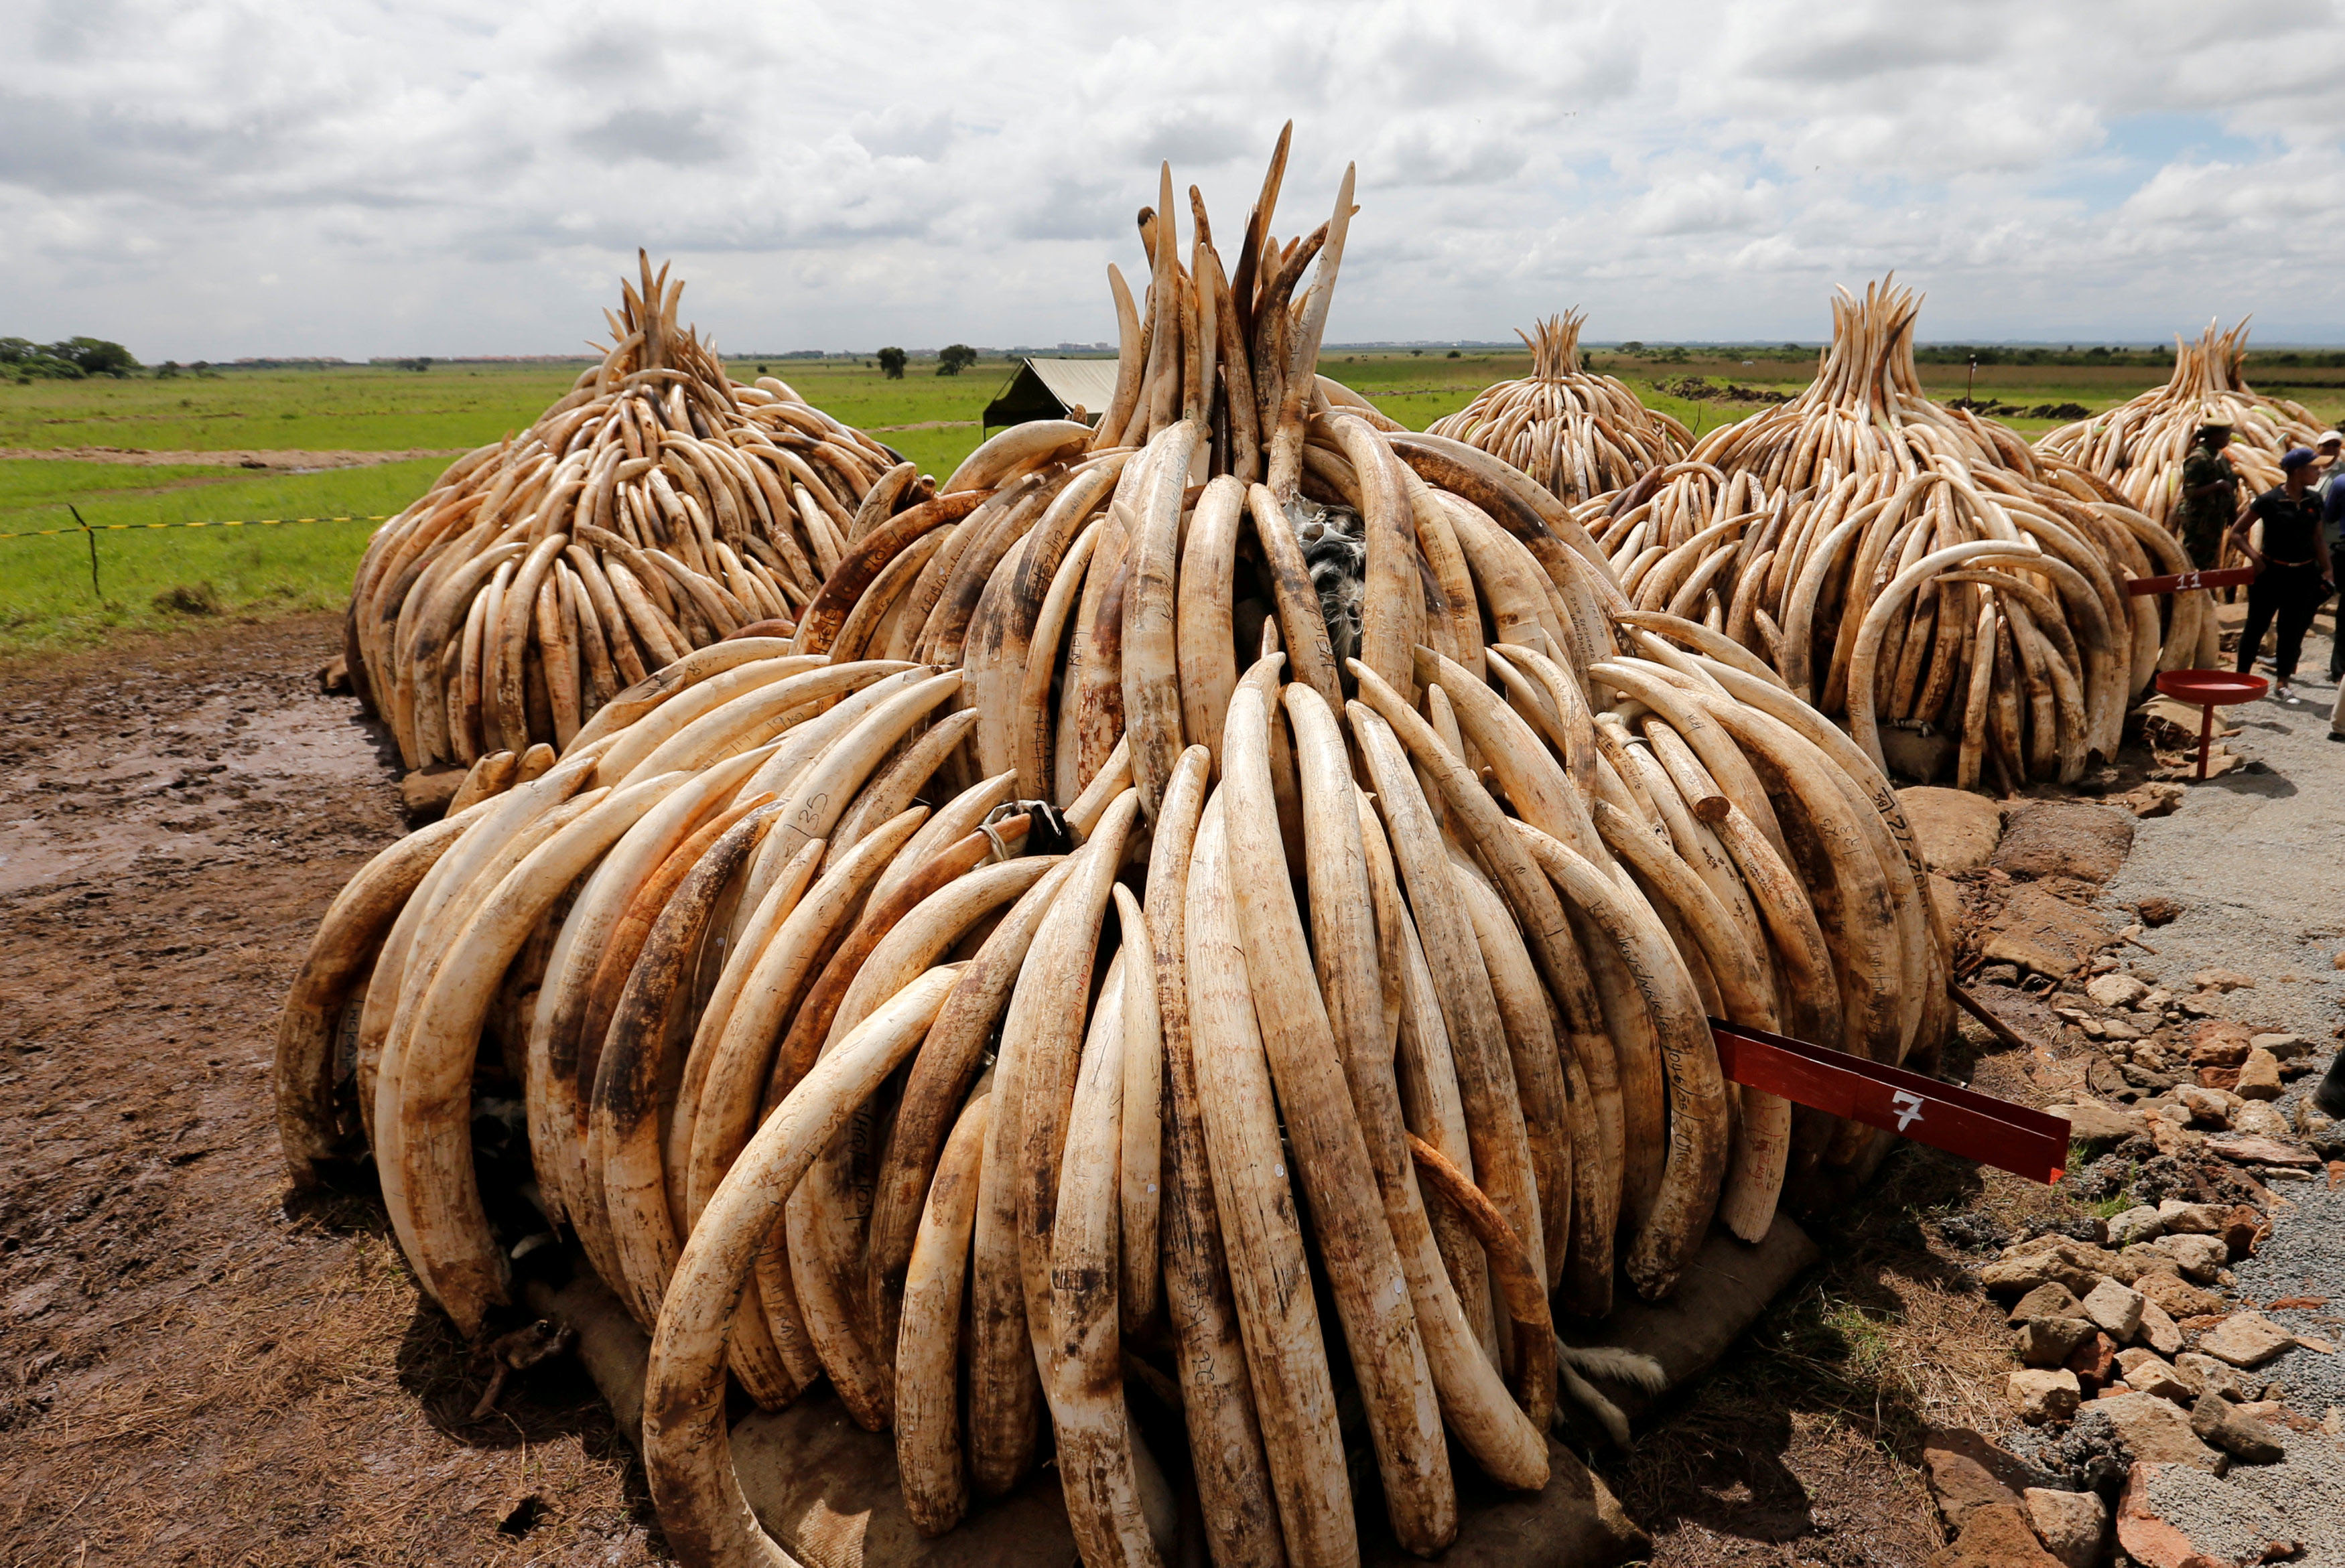 Because the United States recently shut down its domestic ivory market and China is close to doing so, many countries and animal conservationists are closely watching how Japan, one of the largest ivory markets in the world, will react. | REUTERS